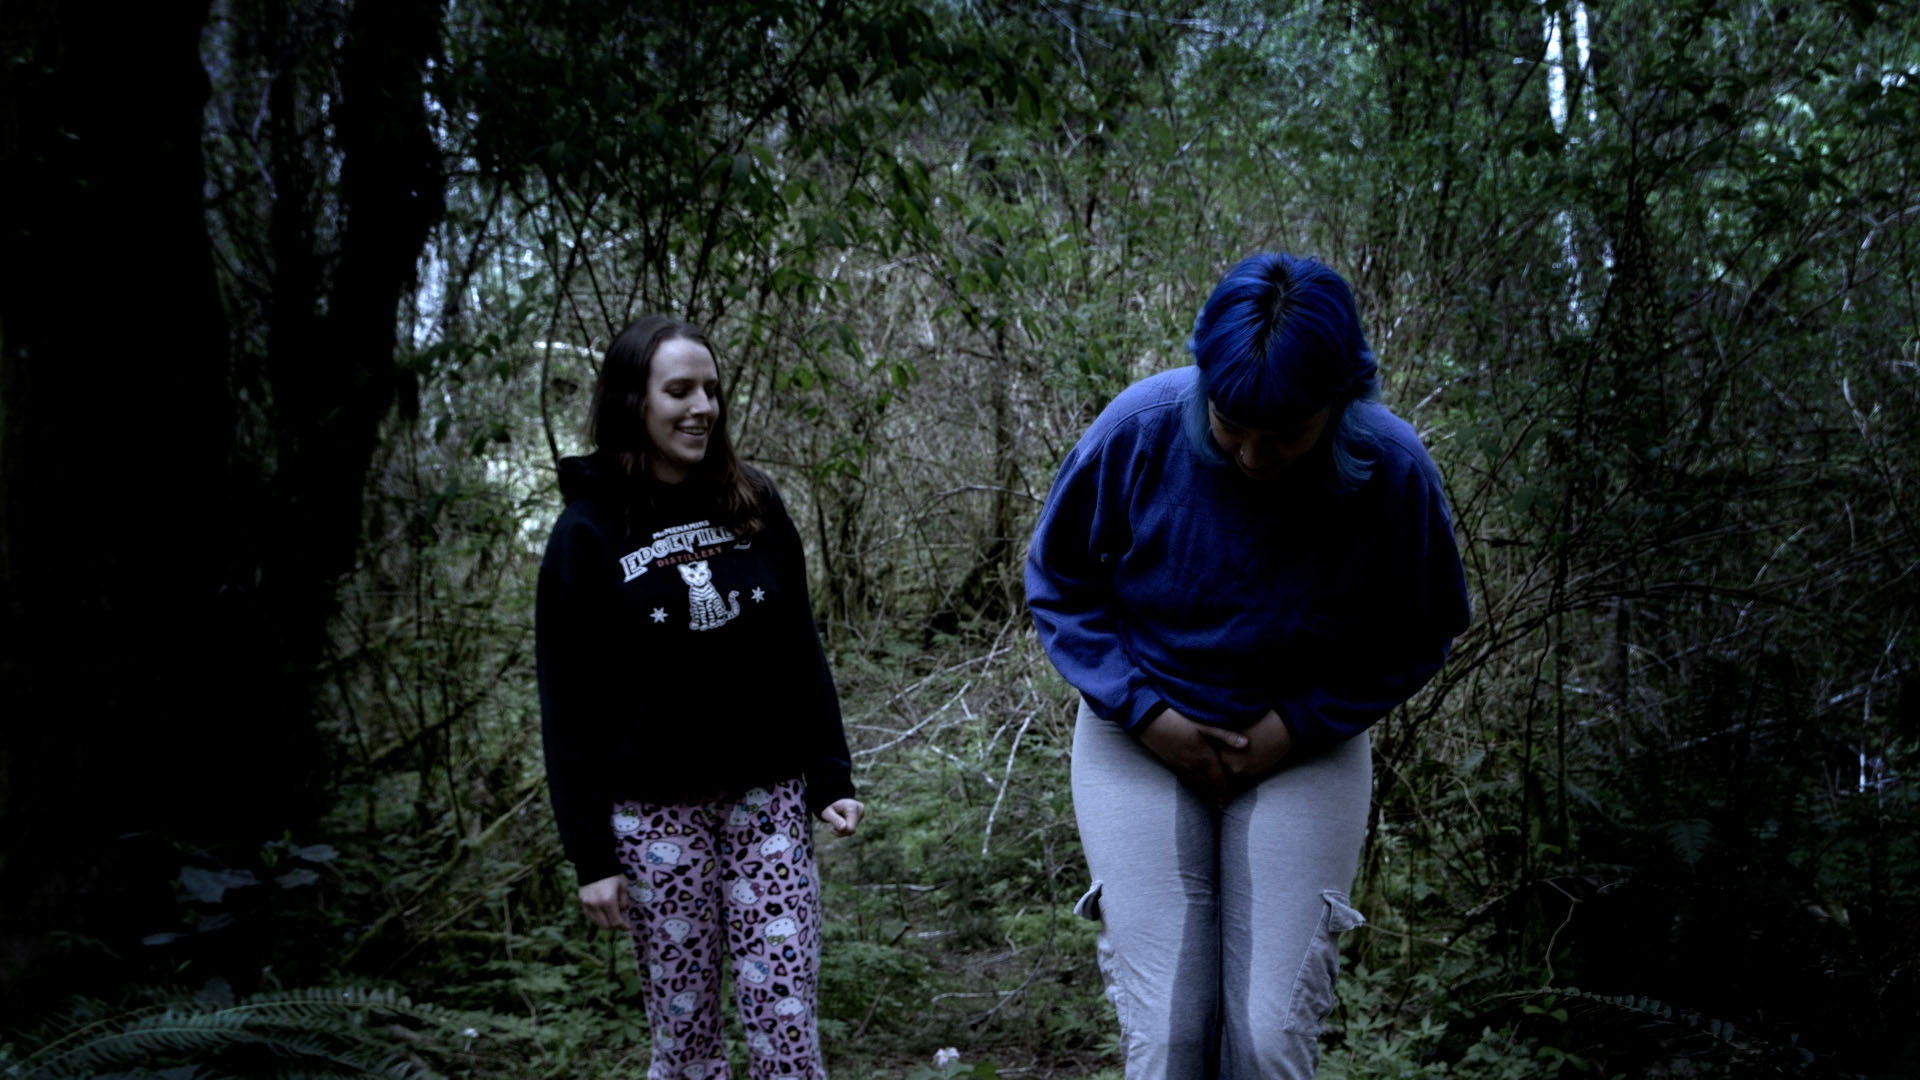 Medium shot of Olivia wetting her pants on accident as Alisha watches.